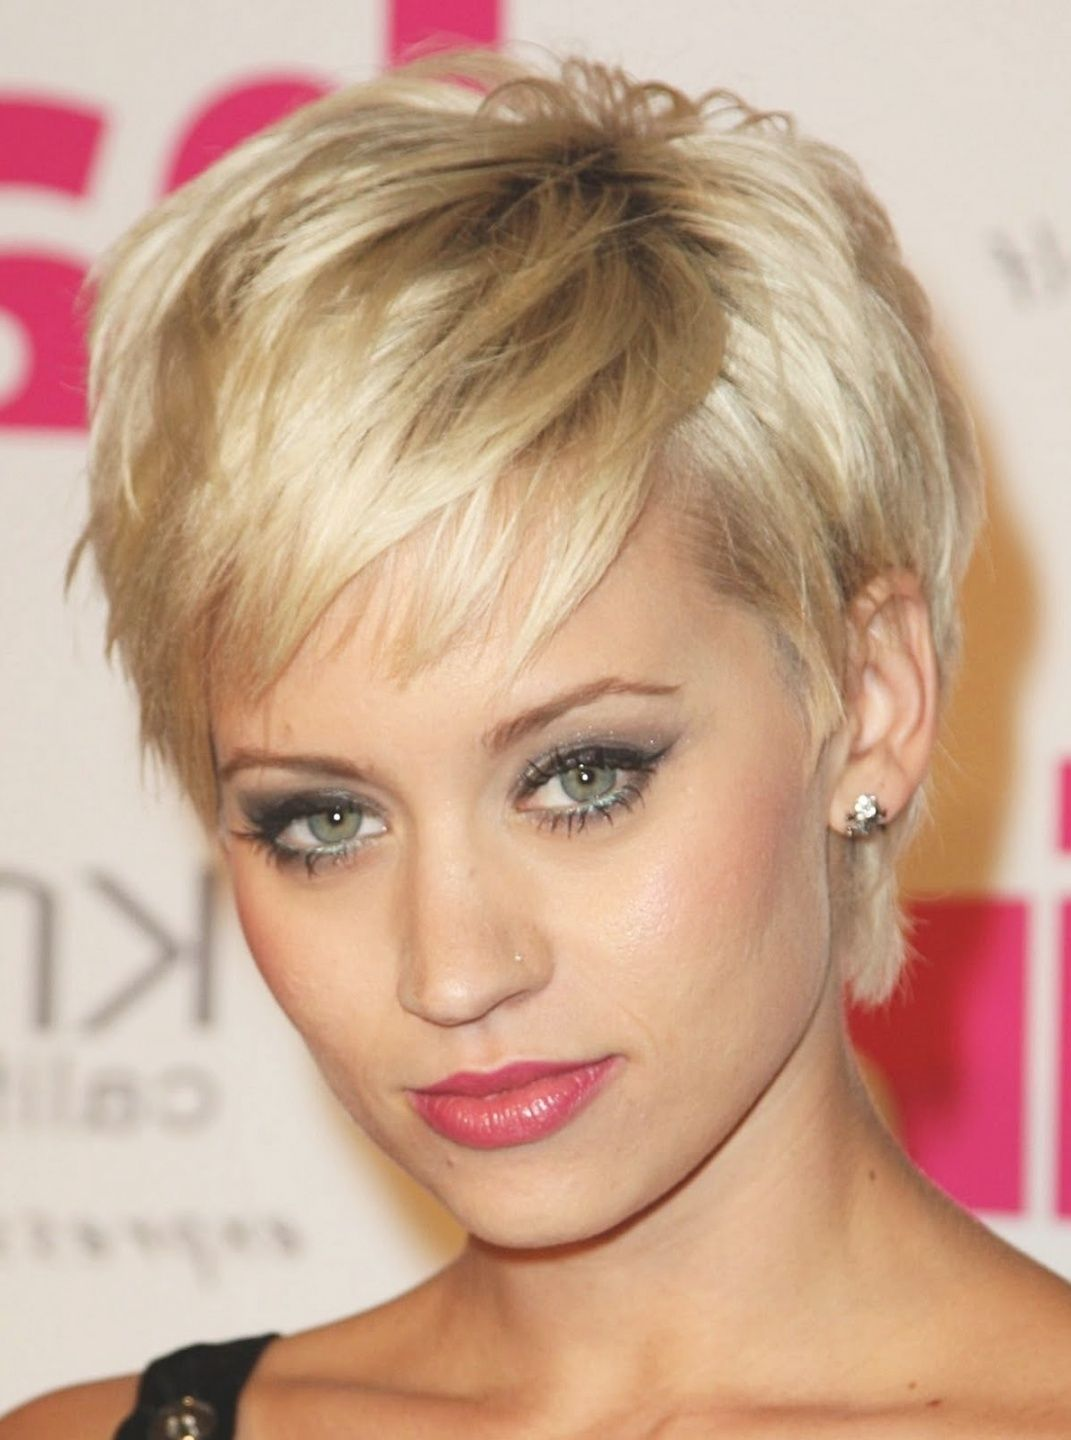 Very Short Hairstyles For Women With Oval Faces 16 Best Hairstyles Within Very Short Hairstyles Short Hairstyles Fine Short Hair Styles Short Hair Styles 2014